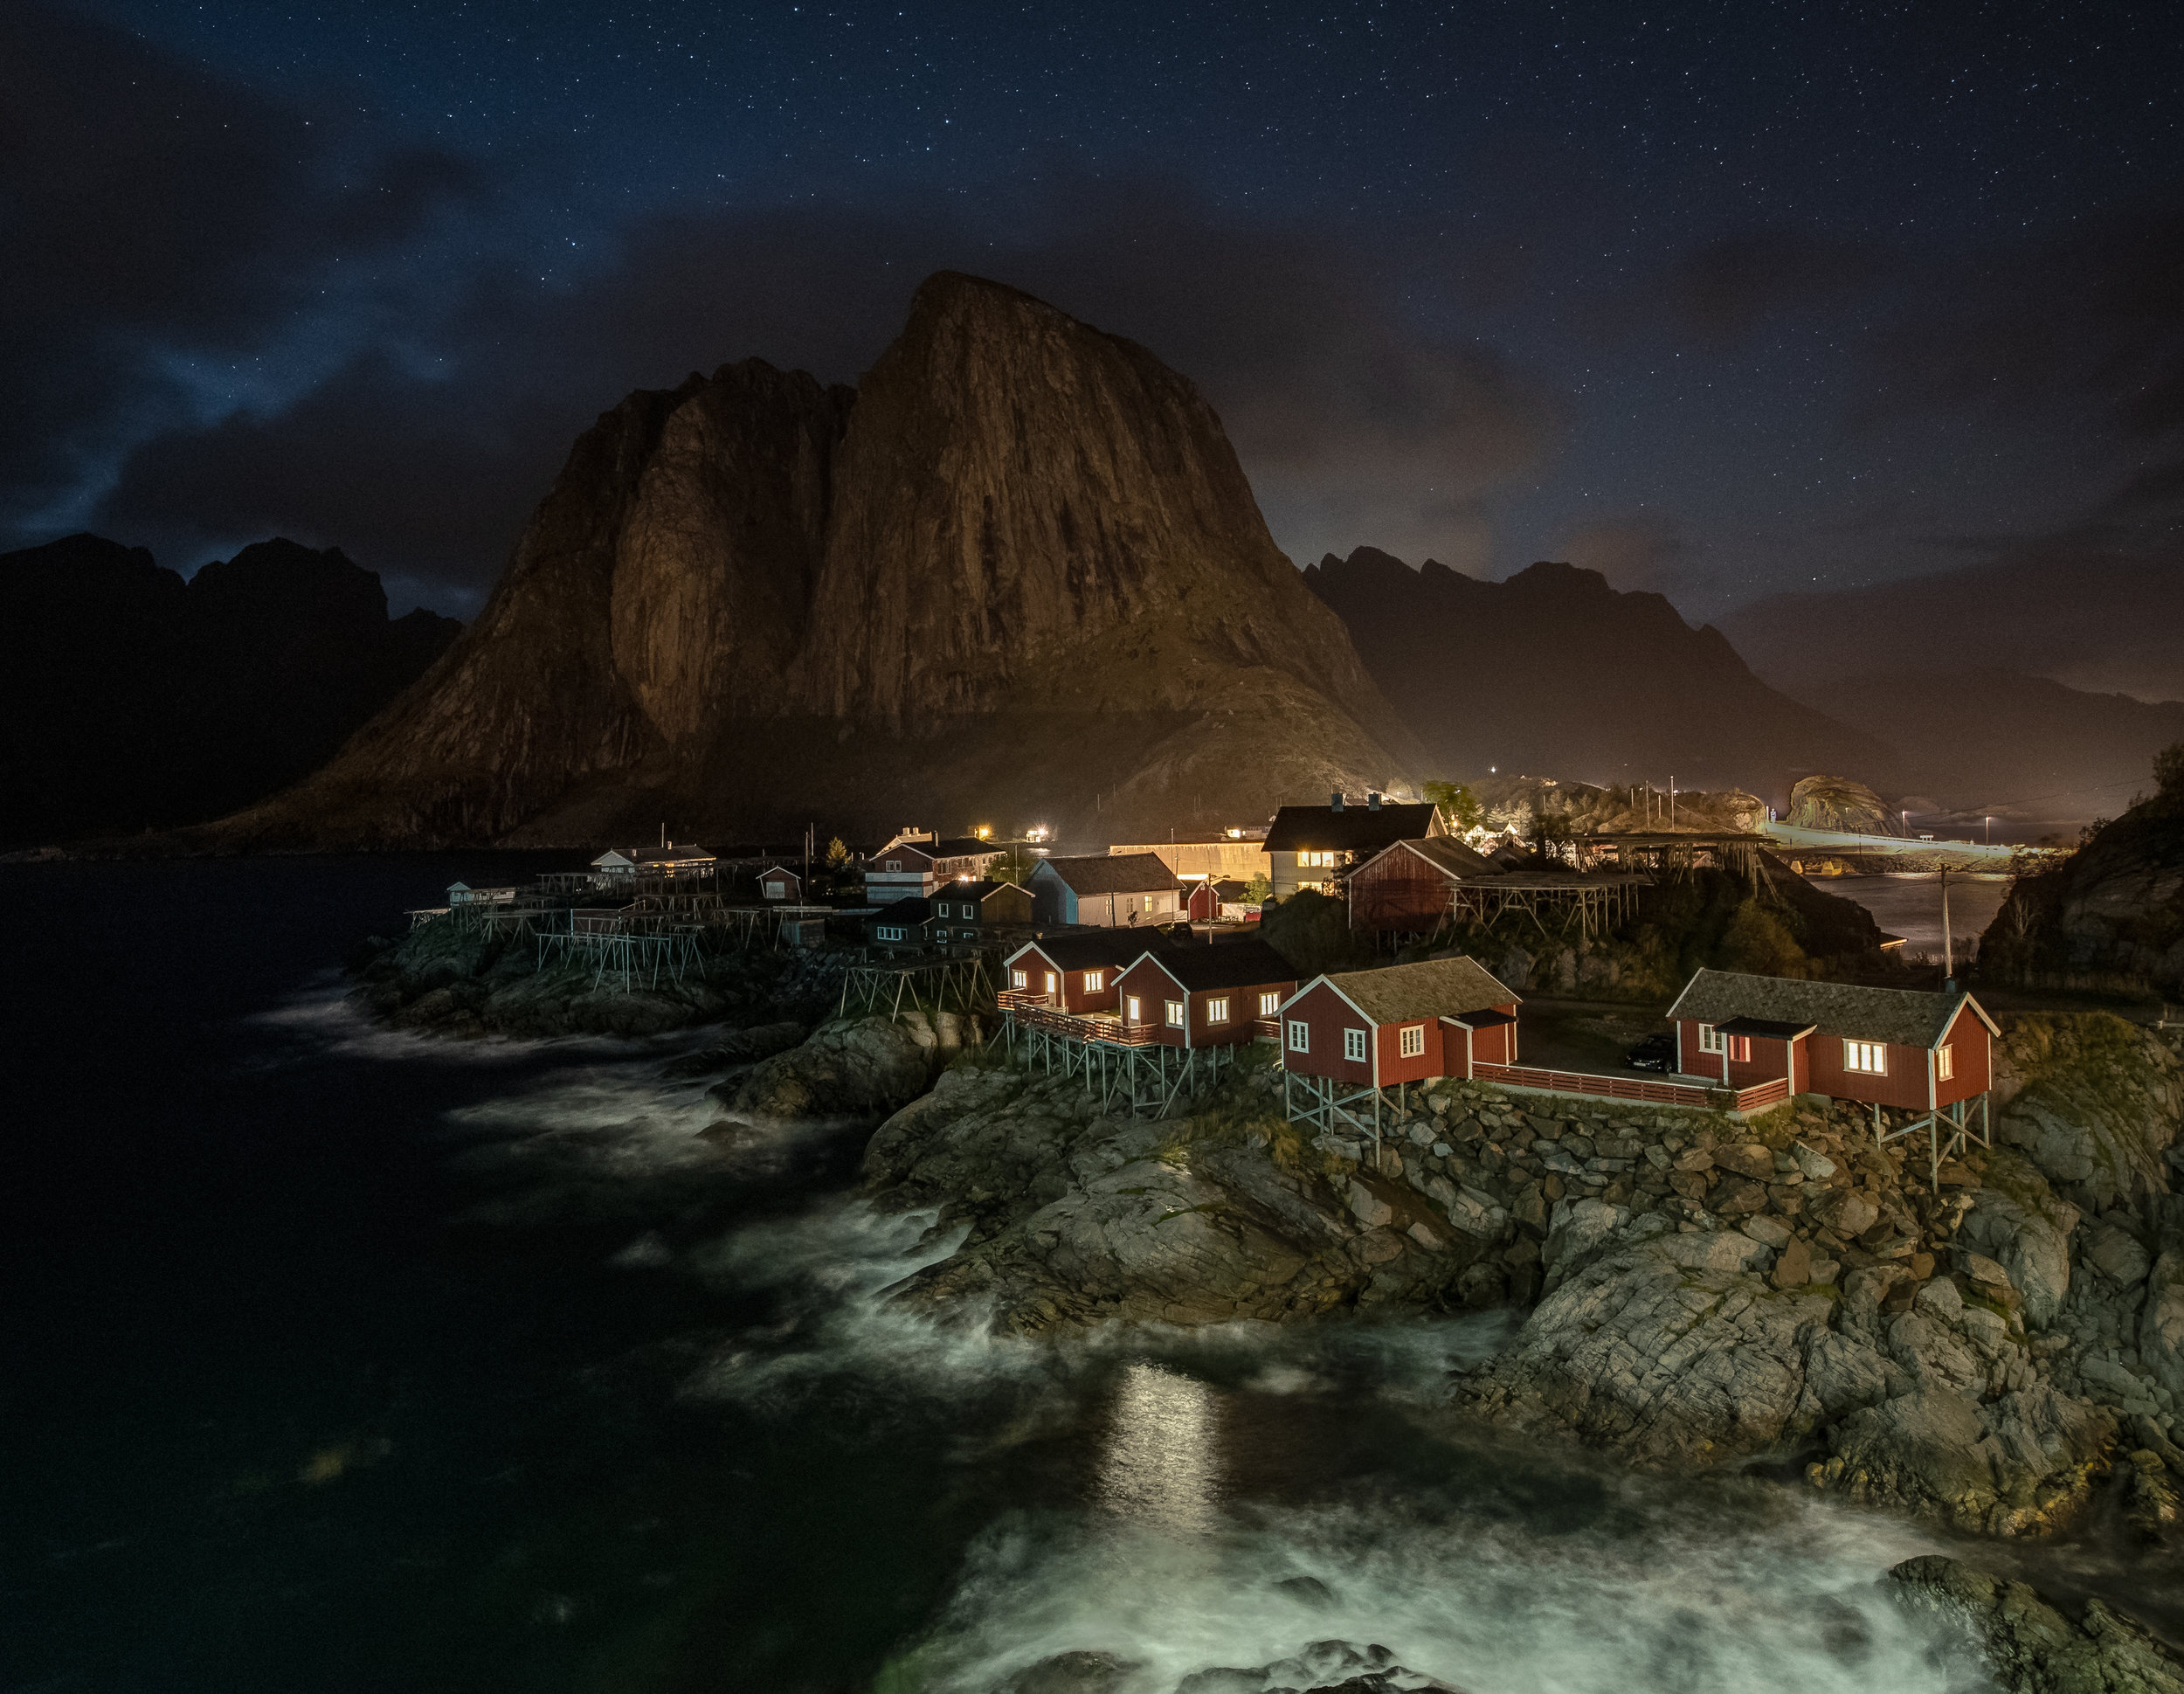 <p><strong>Lofoten Islands (Waitlist Only)</strong><br/> March 8-16, 2020</p>